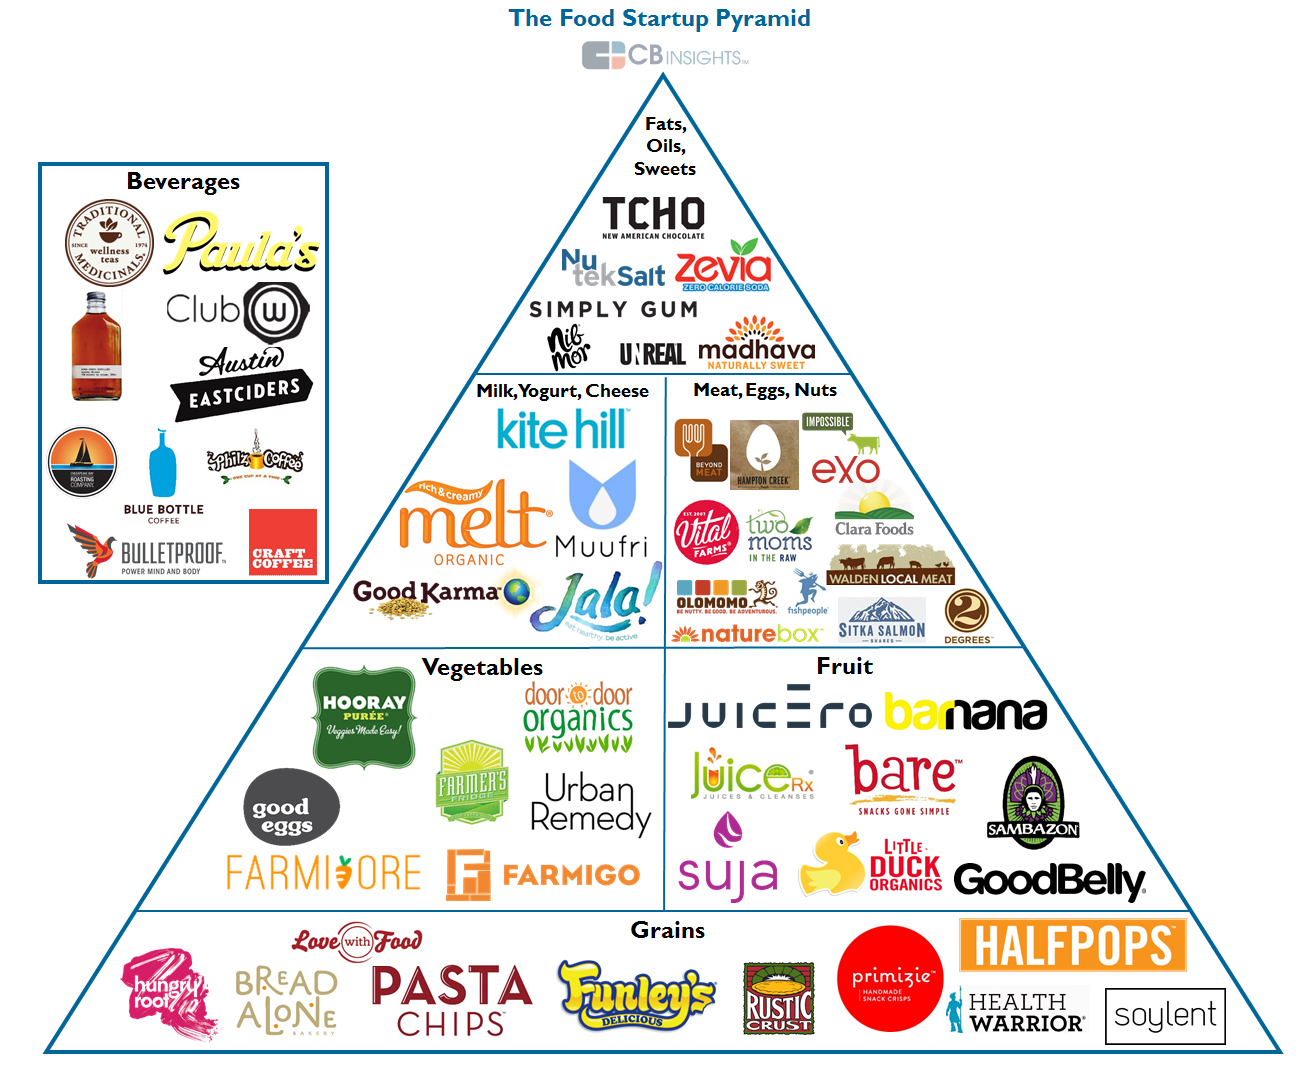 Vc Backed Startups Infiltrating The Food Pyramid Venture